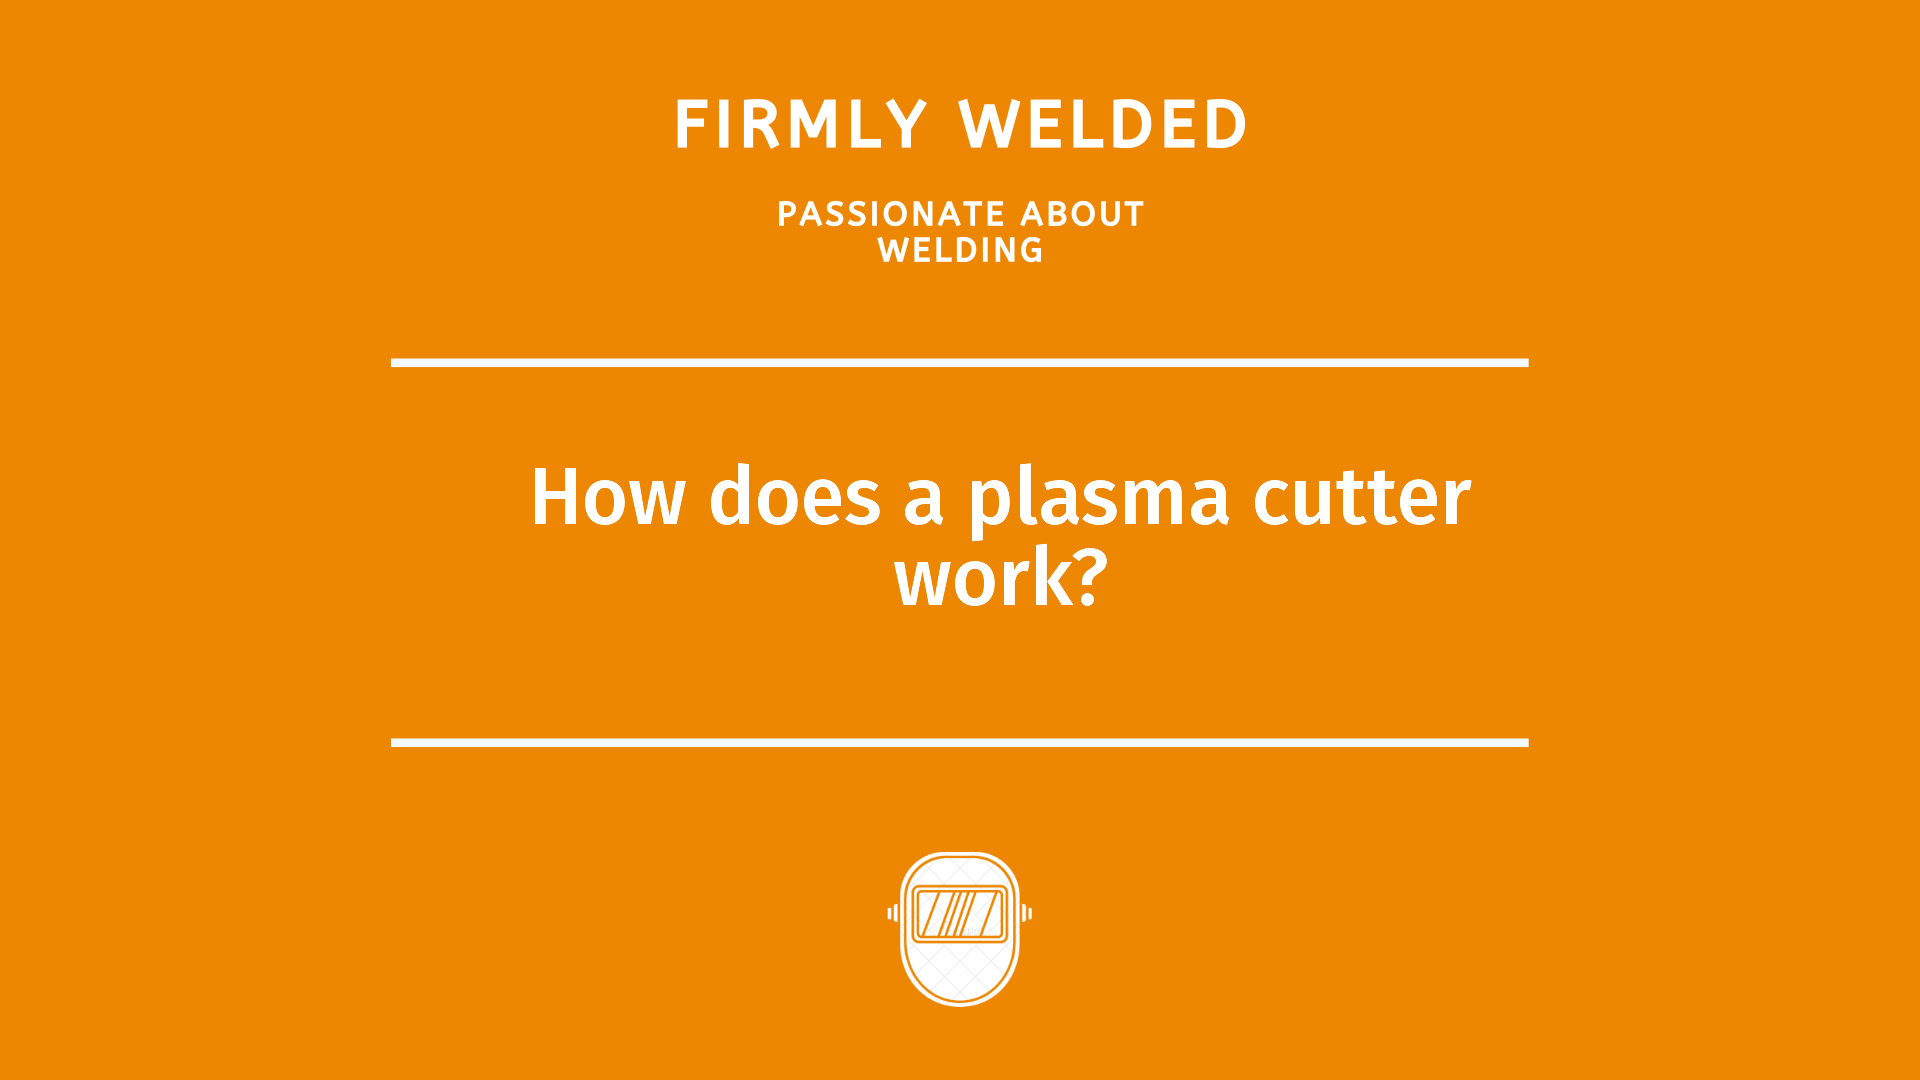 How does a plasma cutter work?